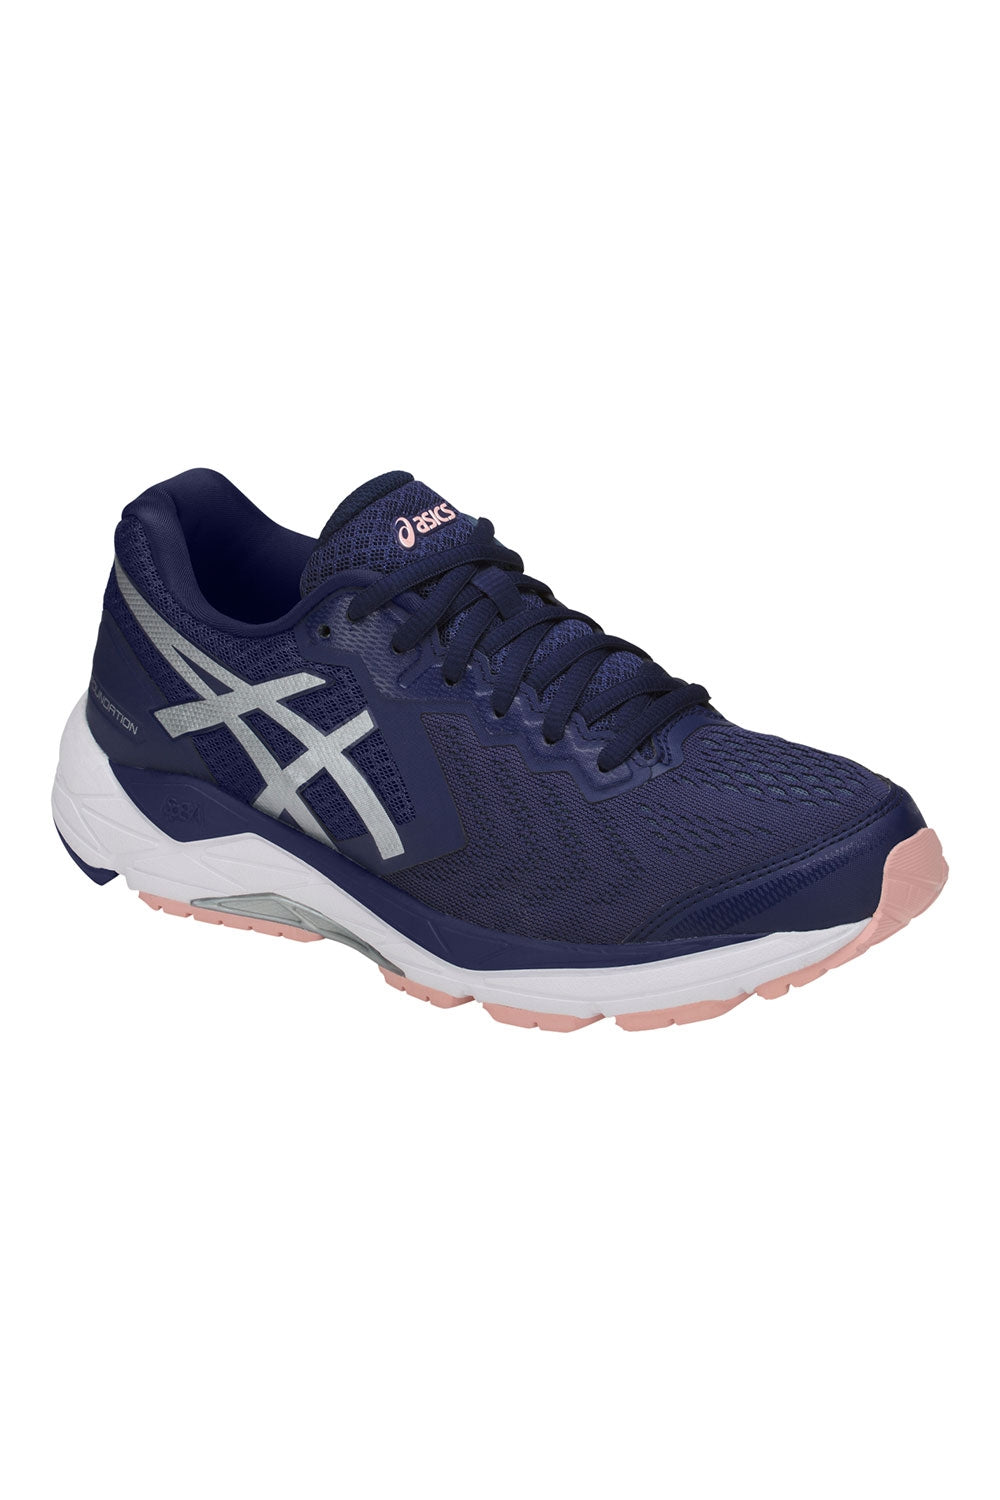 Women's GEL Foundation® 13 (D Wide) by Asics at Gazelle Sports